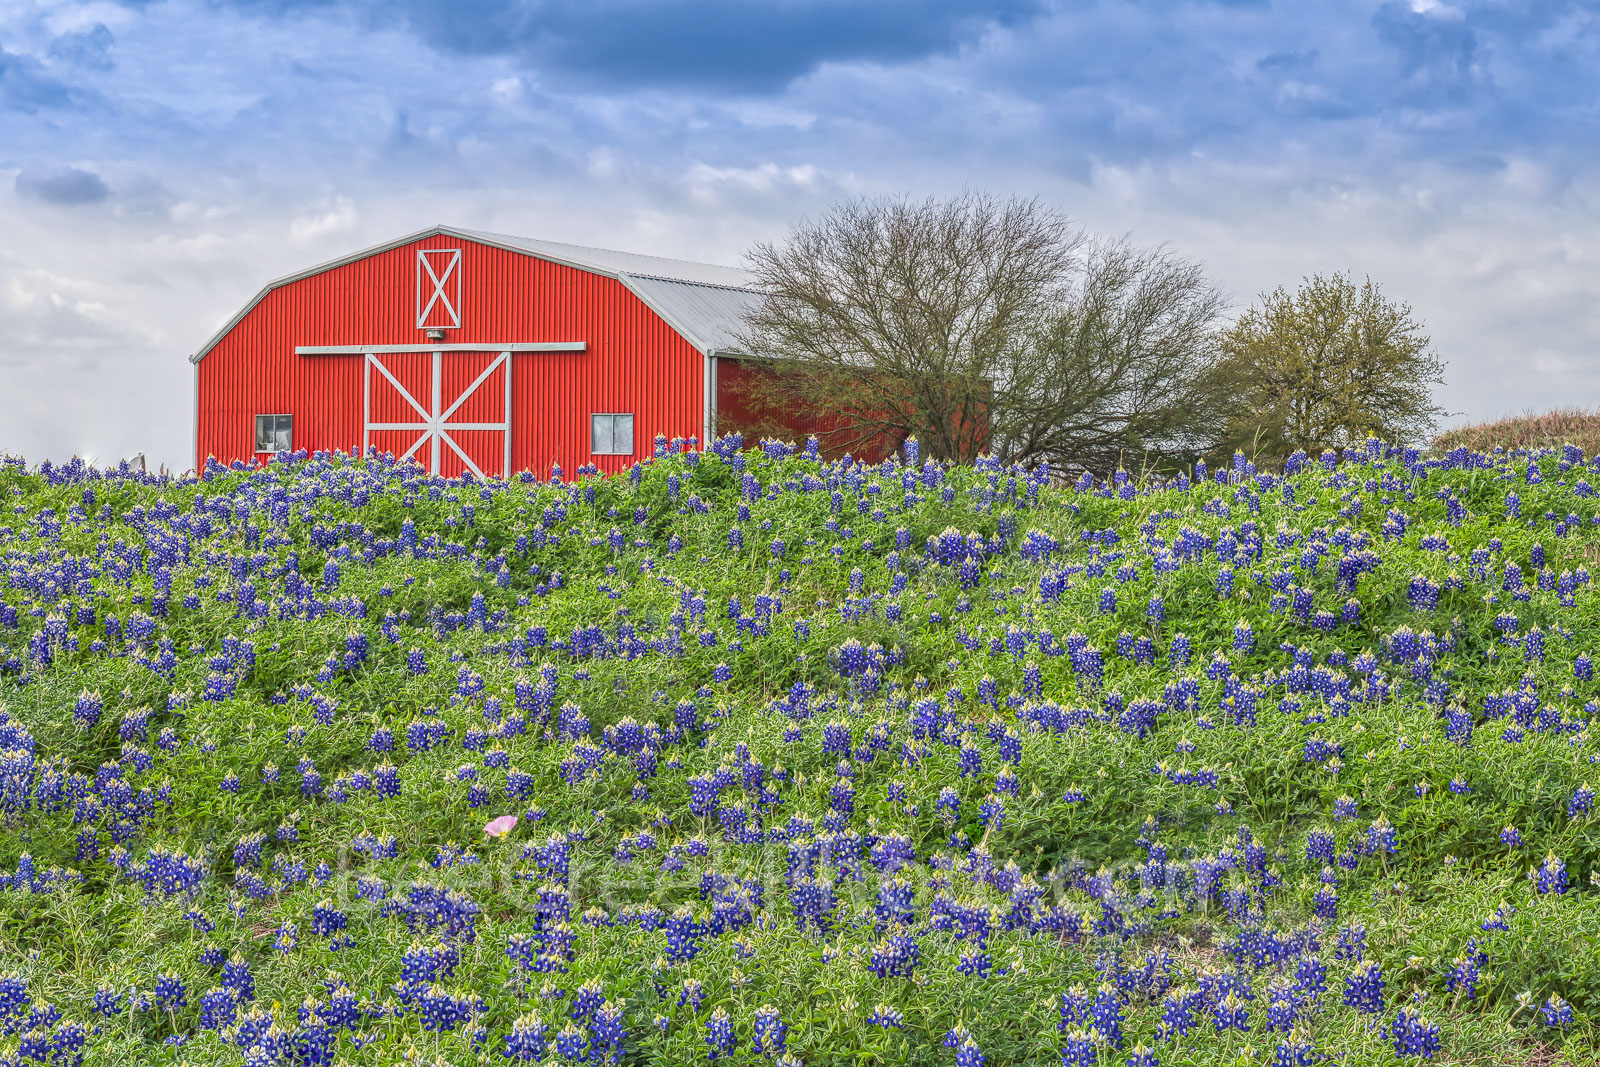 Bluebonnets, Red Barn, wildflowers, spring, springtime, flowers, green grass, moody sky, Brenham, Texas, Chappel Hill,, photo